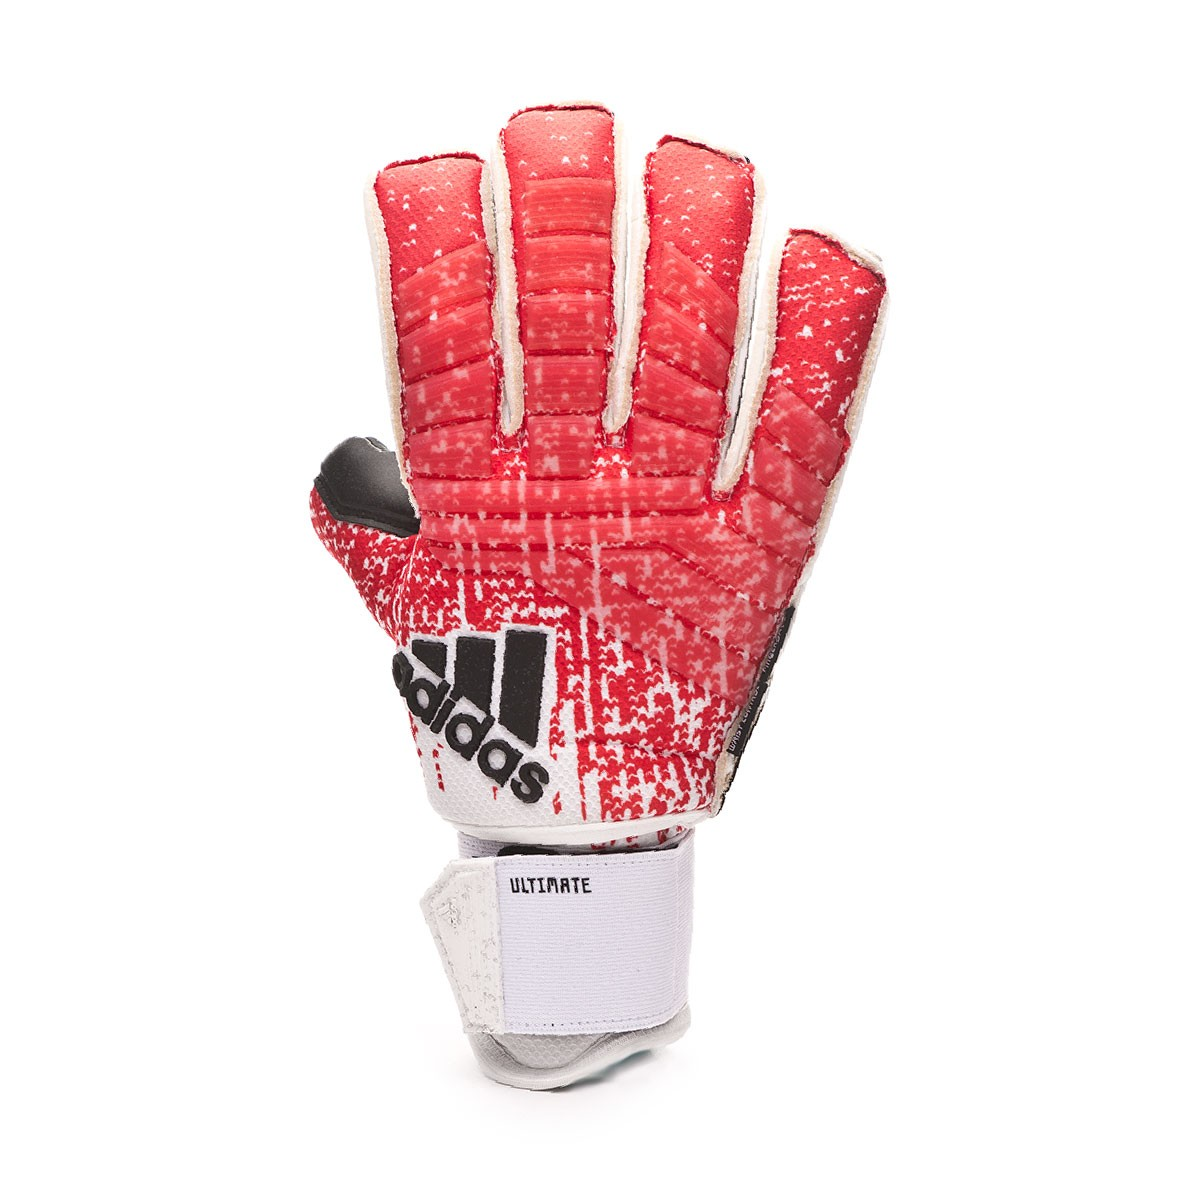 ADIDAS PREDATOR ULTIMATE FINGERSAVE ACTIVE REDWHITE (FINGER & WRIST PROTECTION)